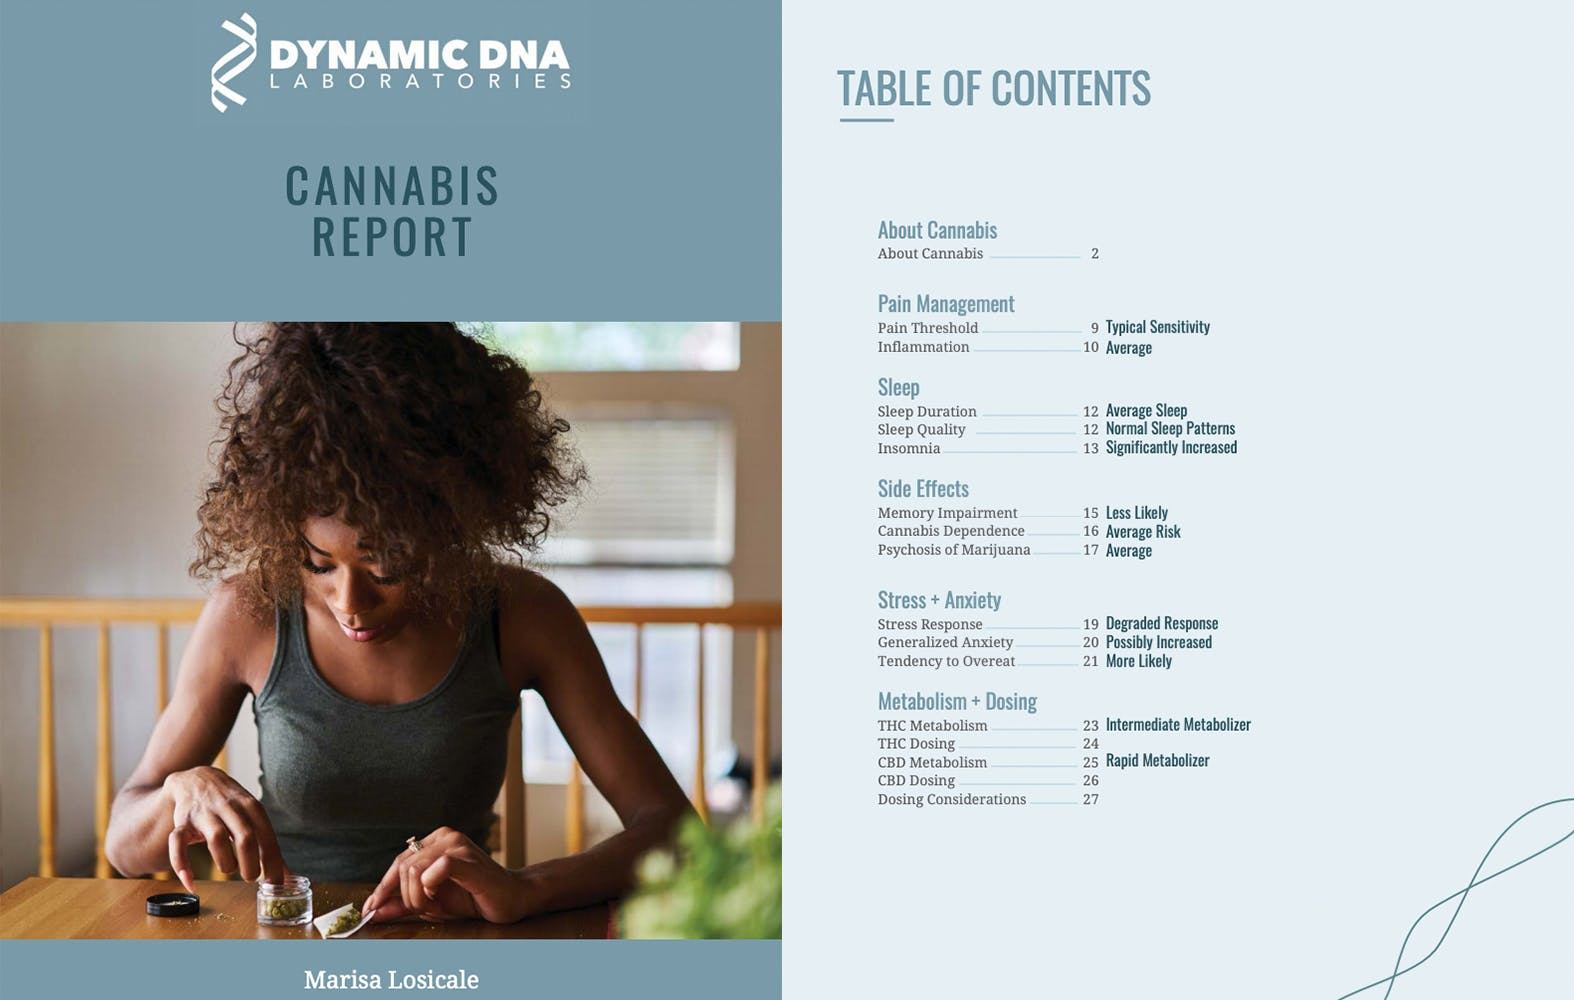 Introduction to Dynamic DNA Laboratories cannabis DNA test results